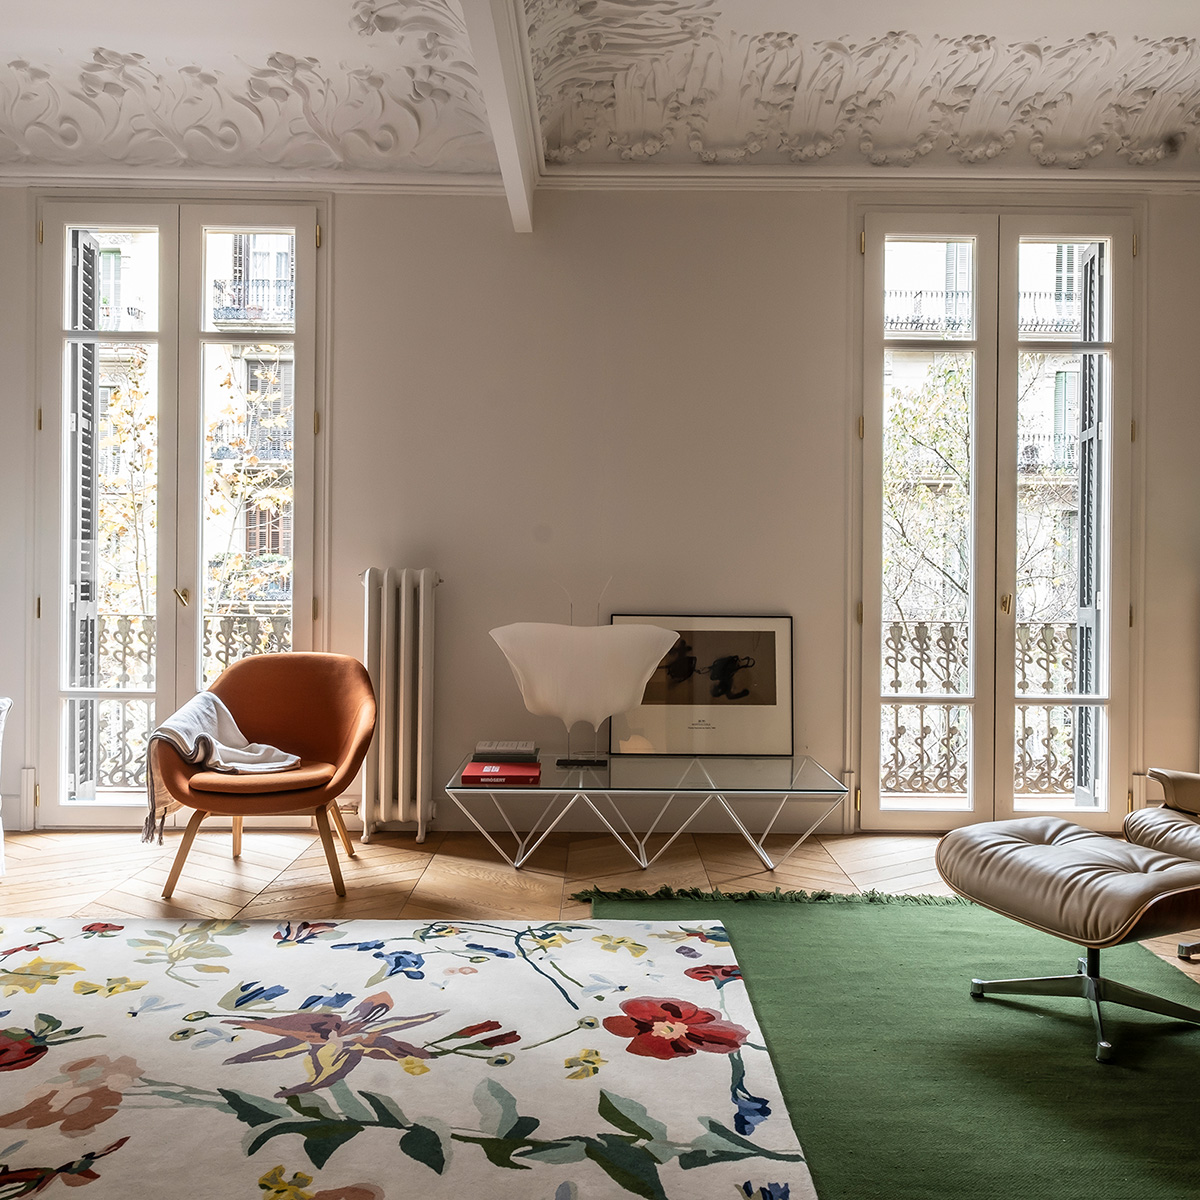 Carpet shopping from the comfort of your home